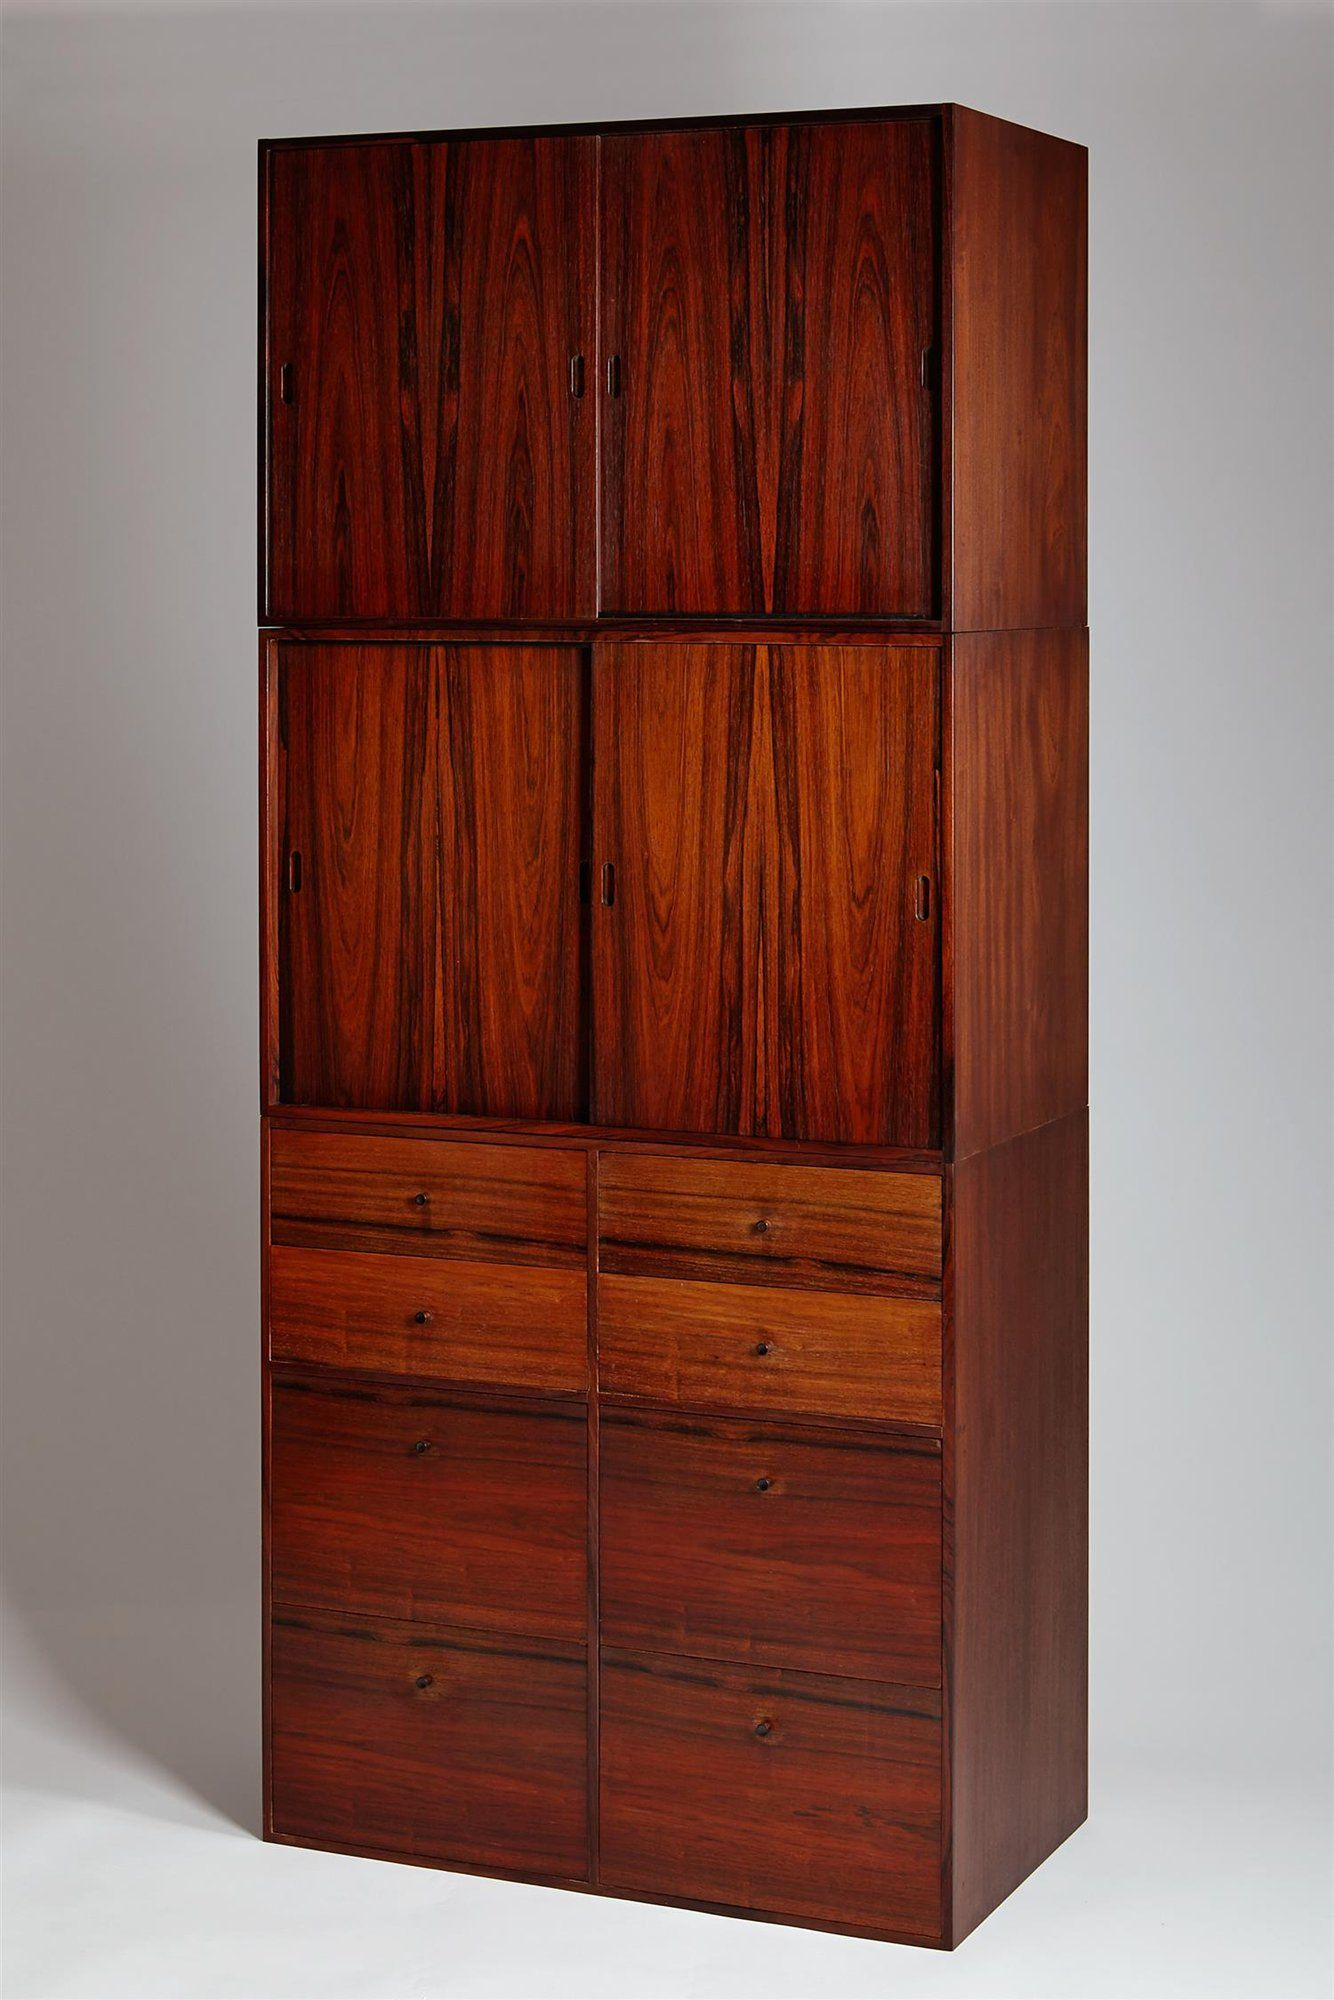 Armoire Style Japonais Mogens Koch Rosewood And Mahogany Modular Cabinets For